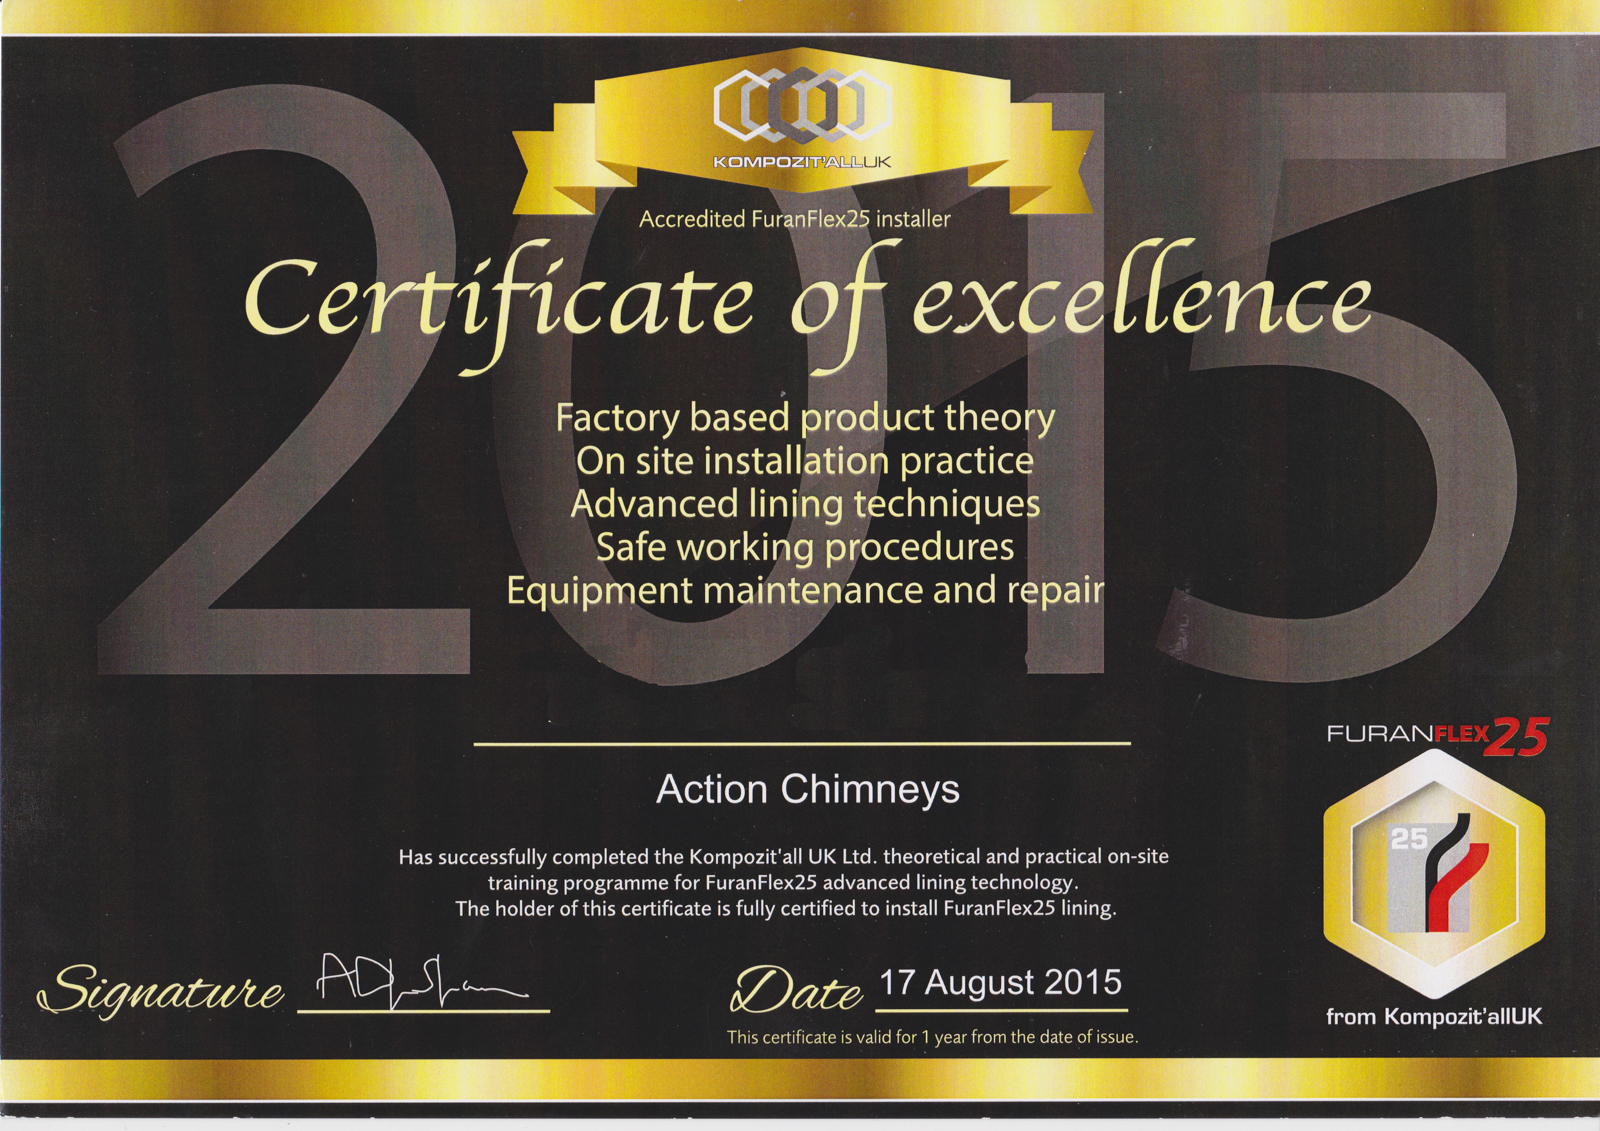 Furanflex25 certificate that each employee is presented with